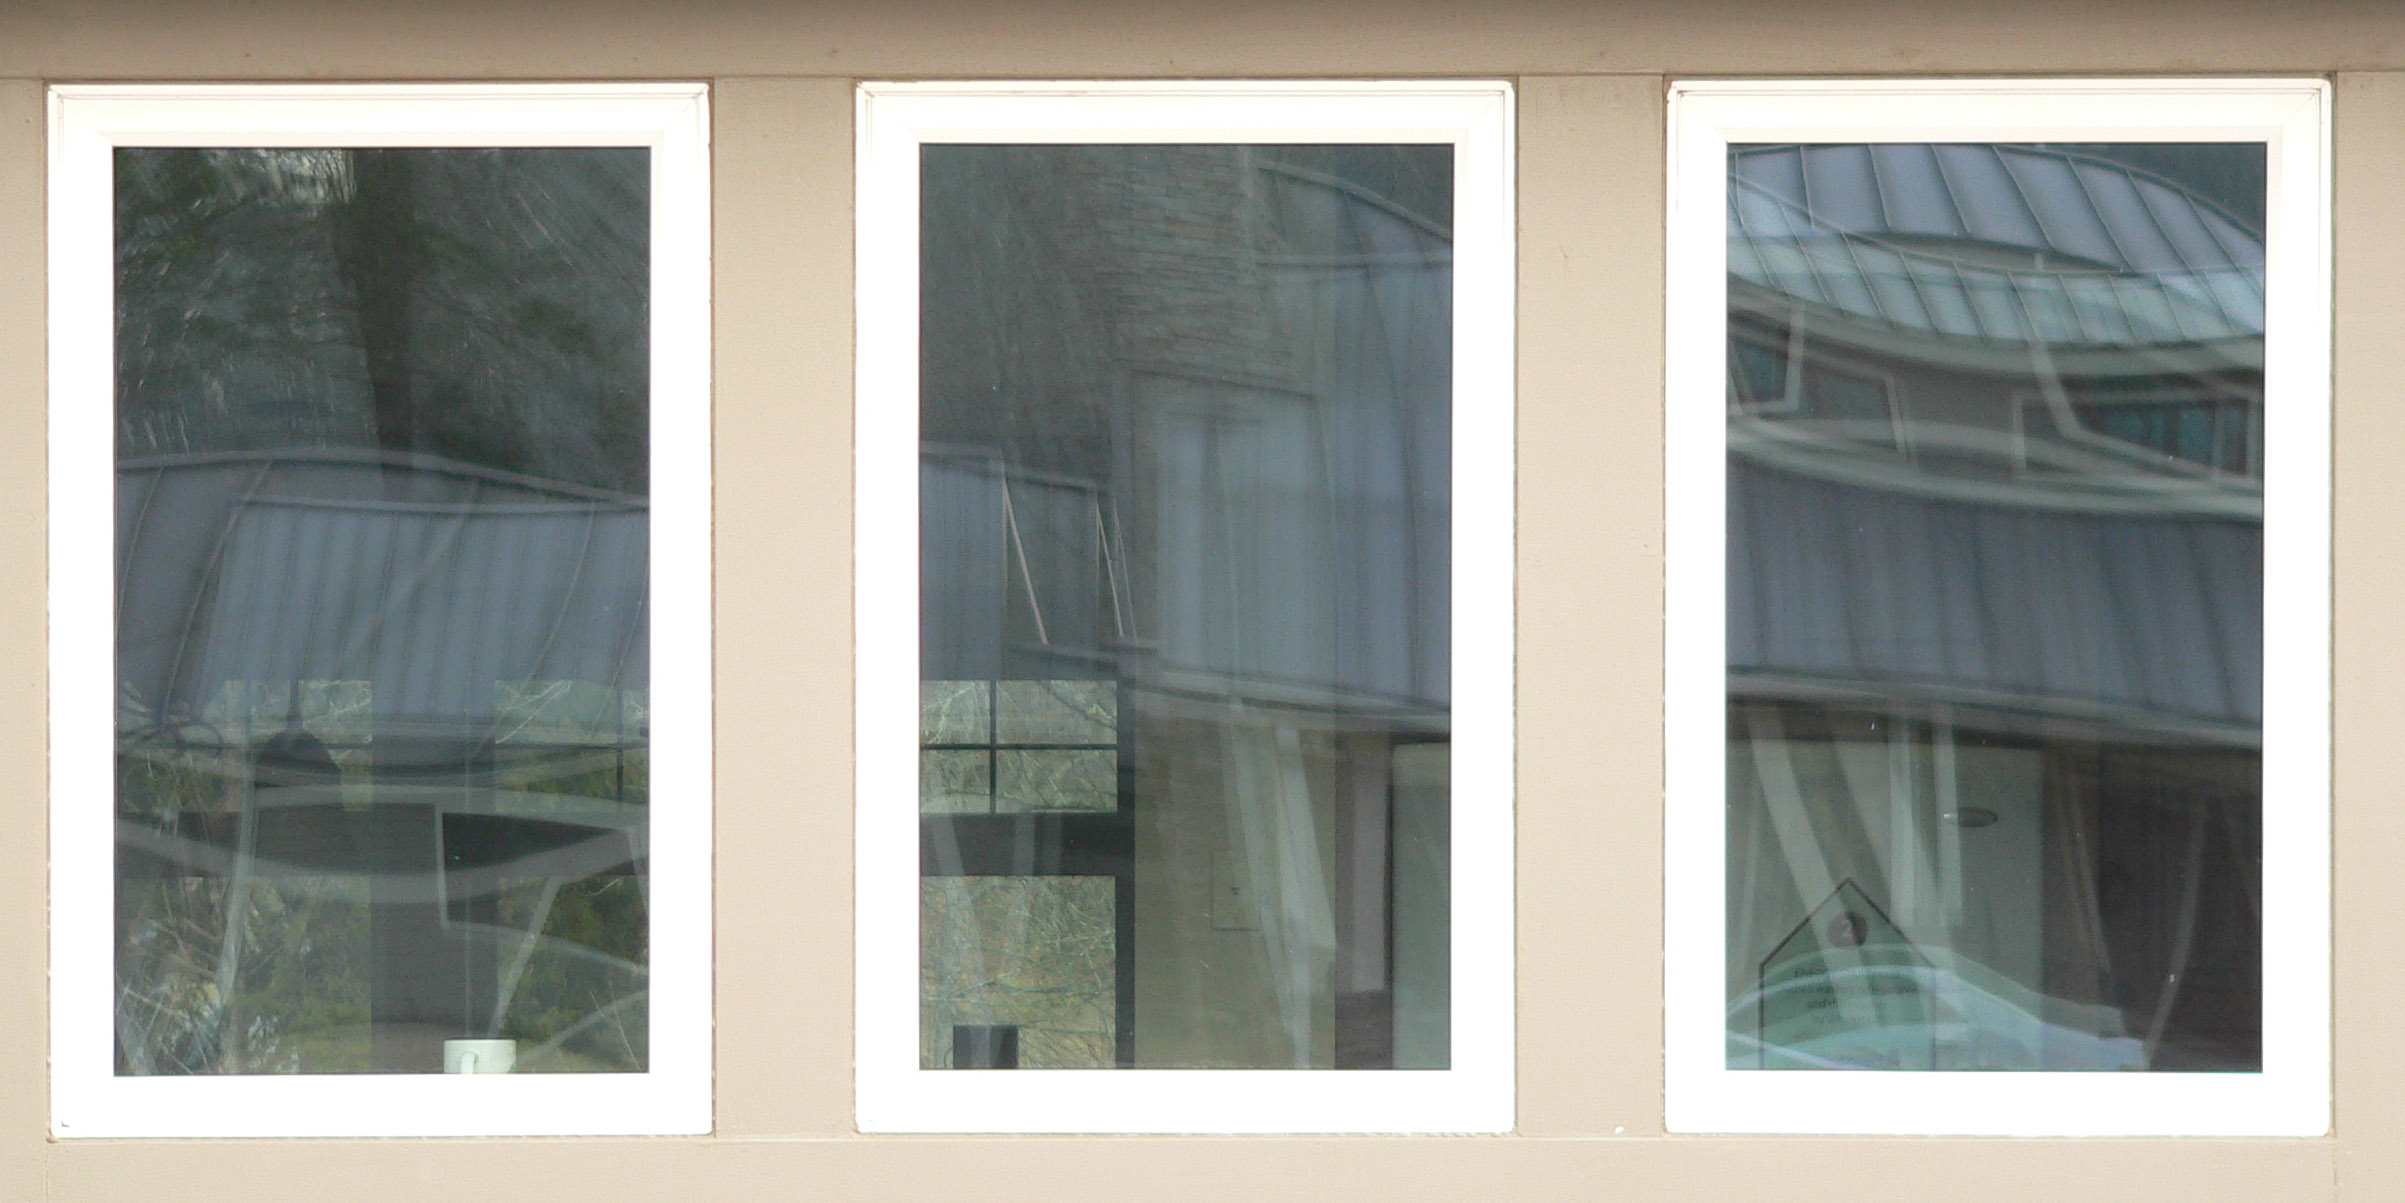 3 windows